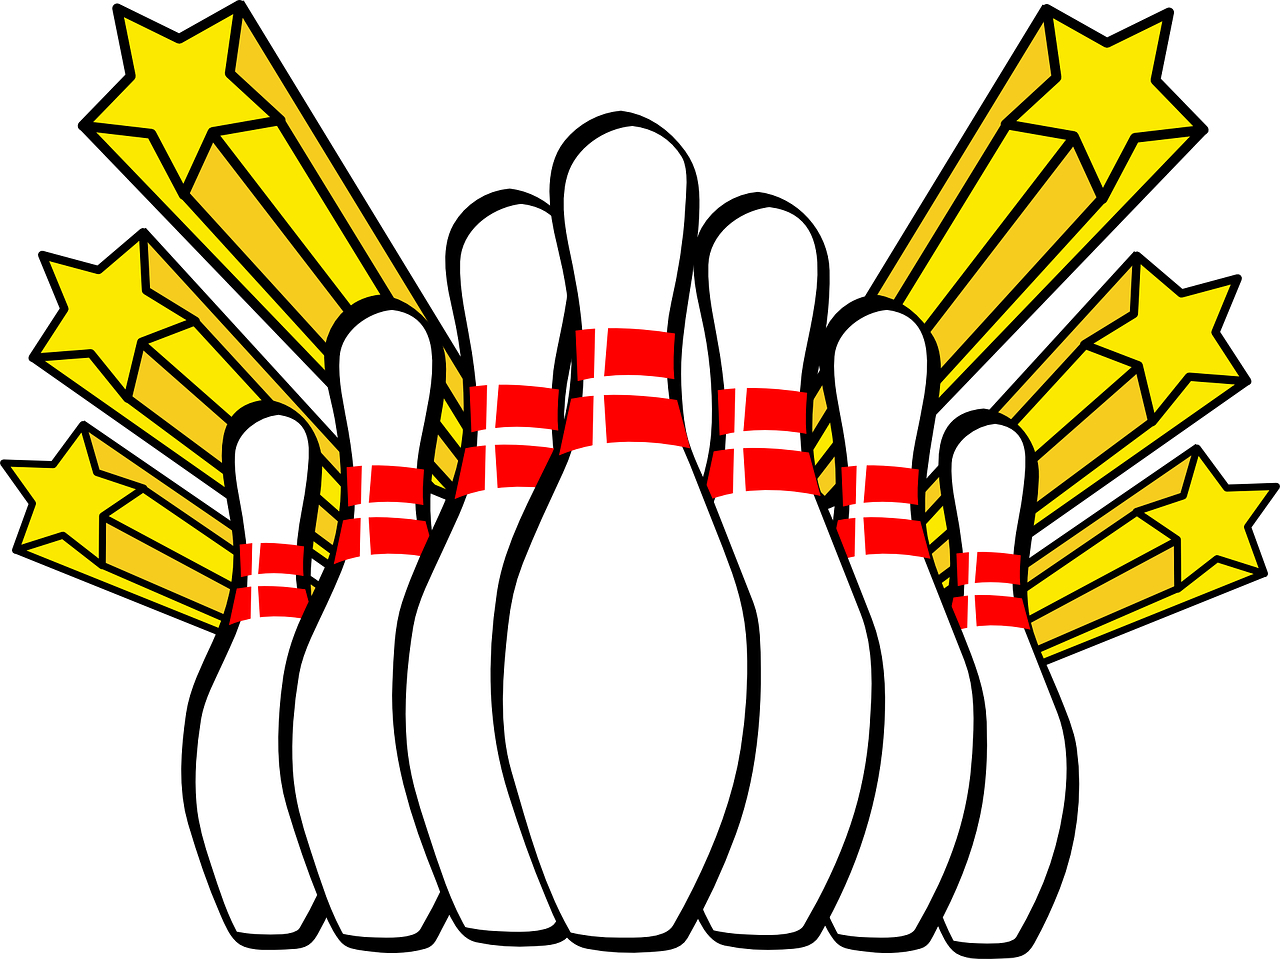 Bowling clipart ten pin bowling. Strike spare png image